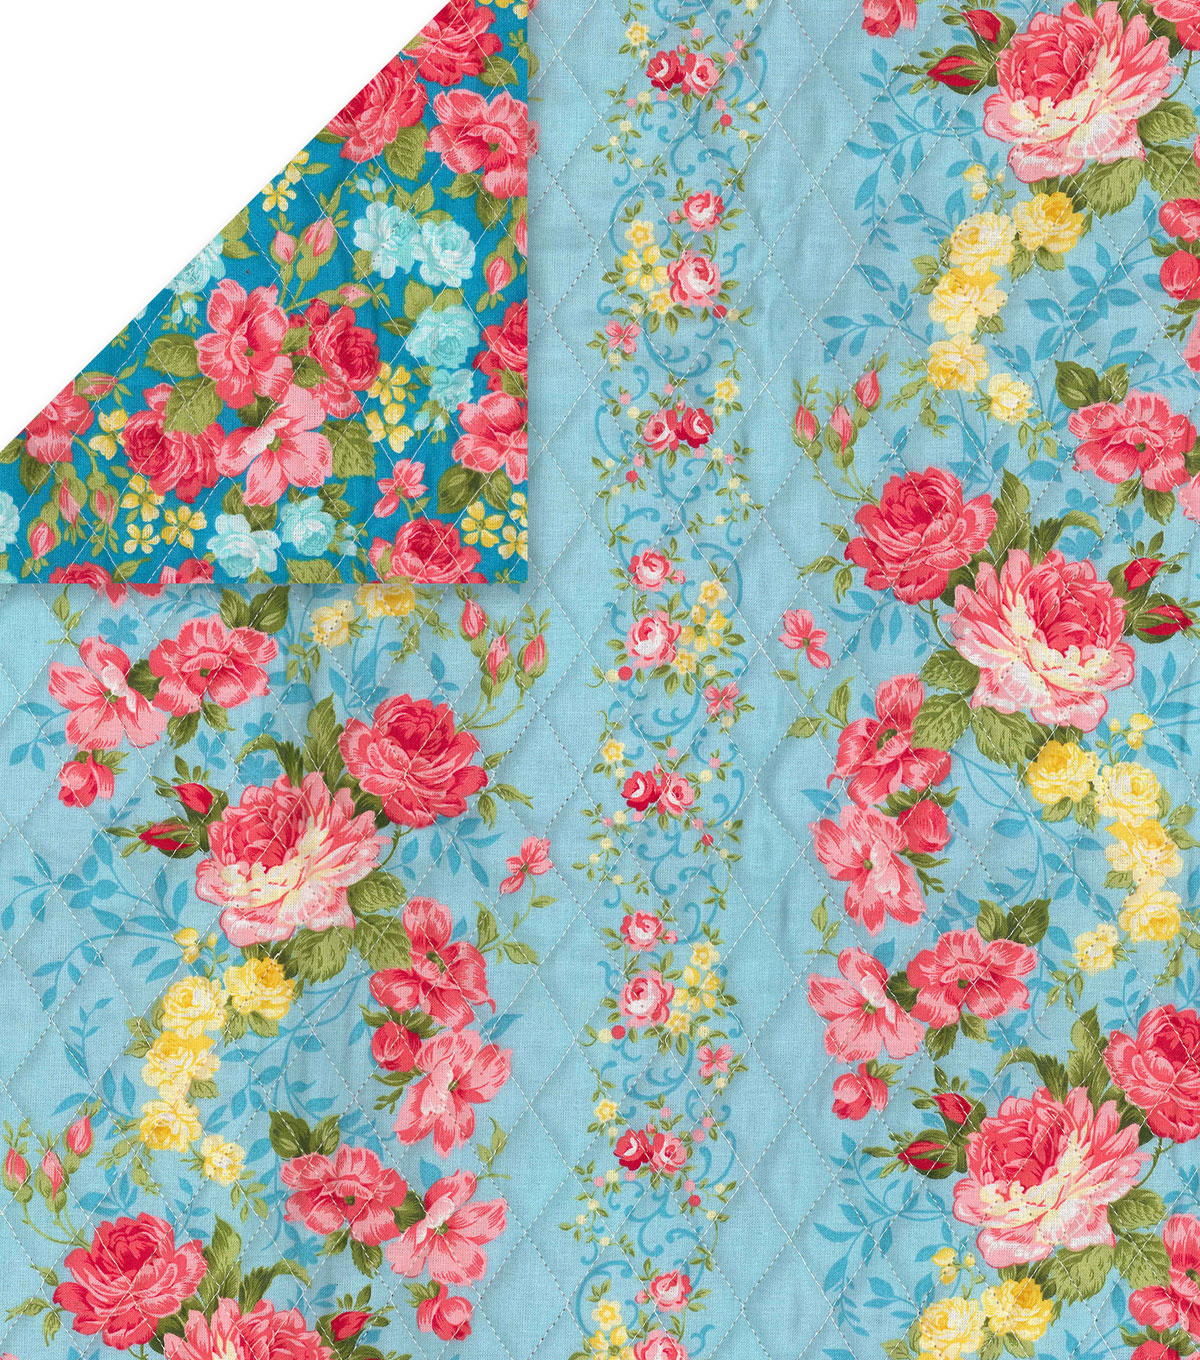 Double Faced Pre Quilted Cotton Fabric Blue Floral Stripe